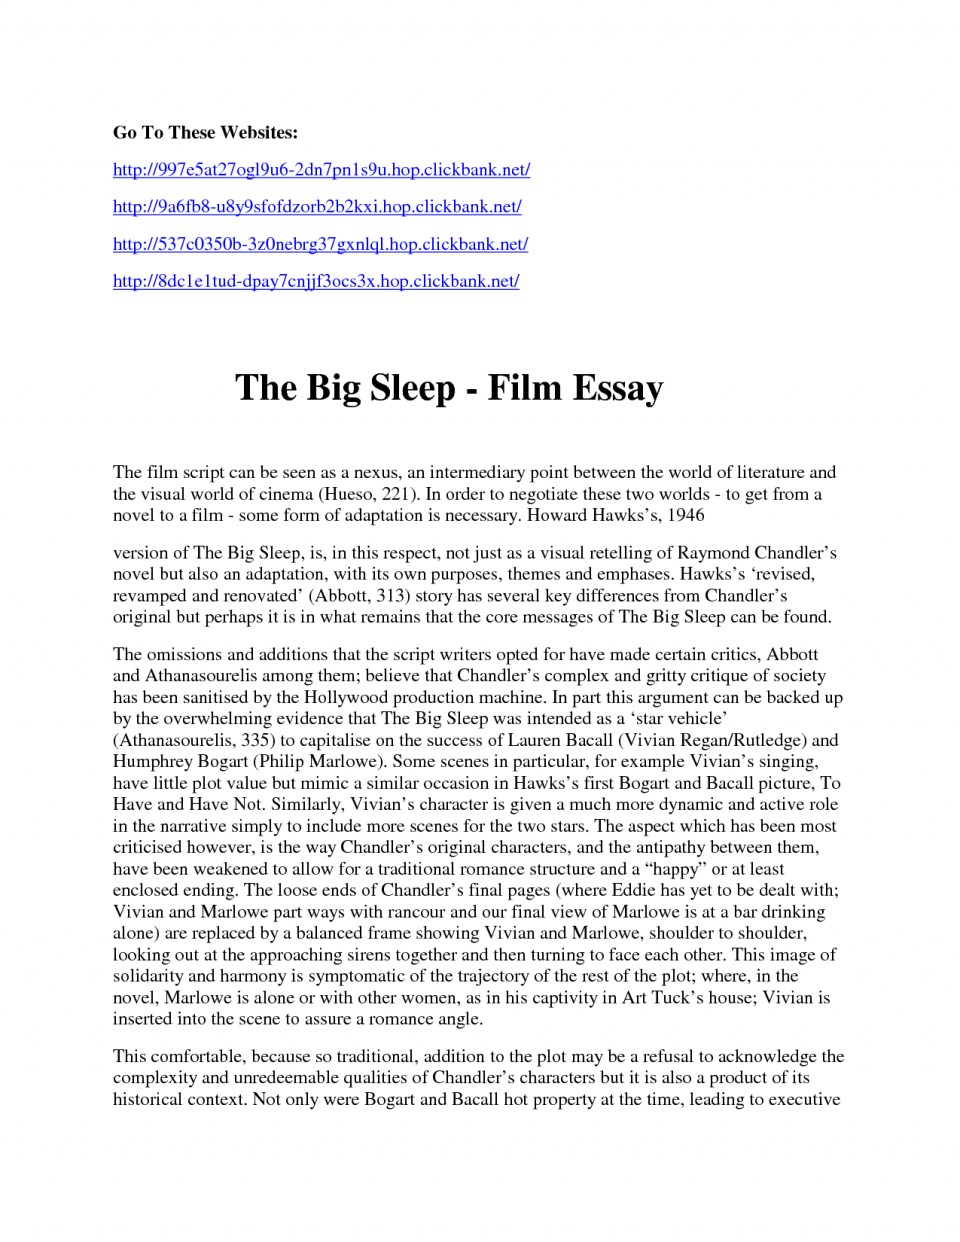 003 Example Movie Review Essays 130056 Essay Frightening Film Examples Genre Questions 960